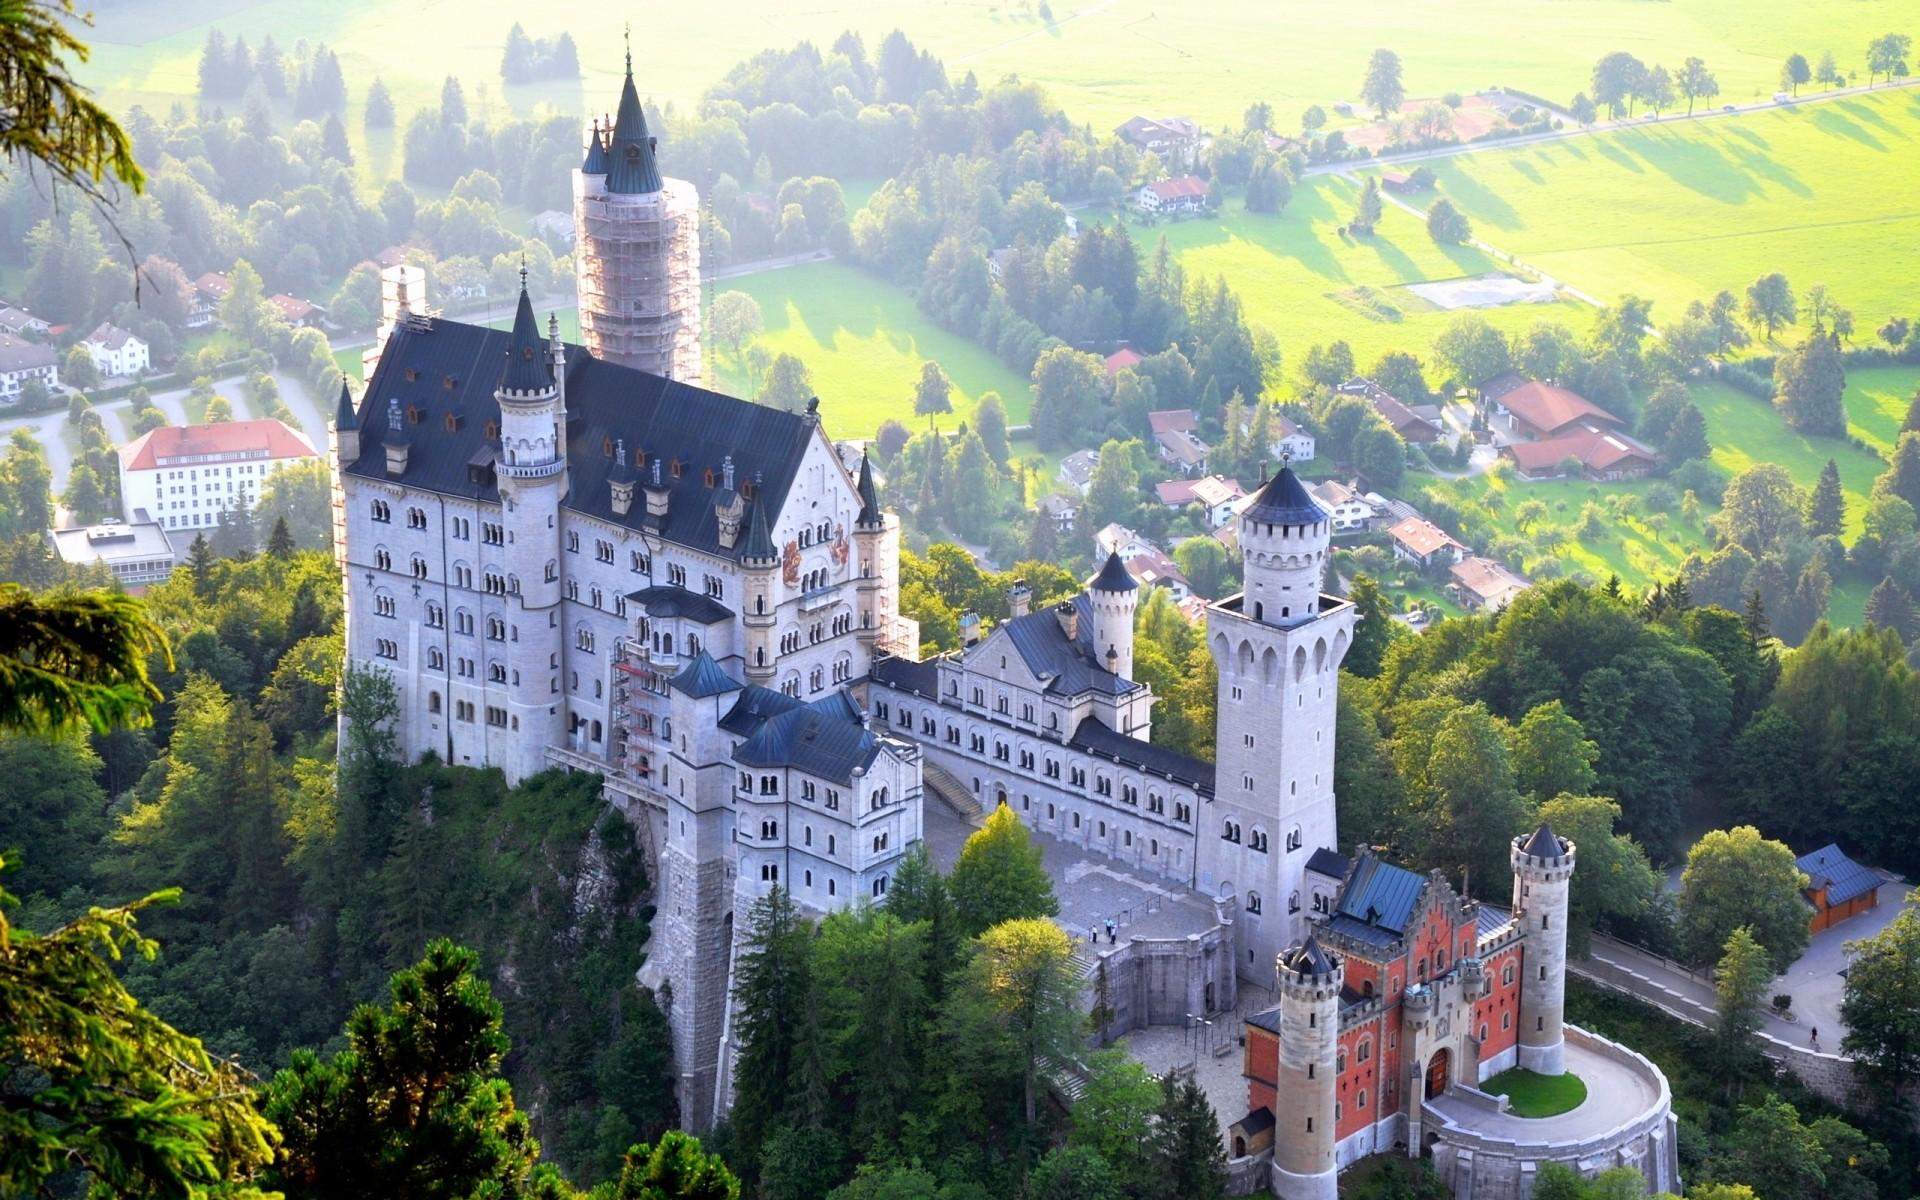 germany architecture travel building old castle church town city sight hill tree tower summer tourism house landscape sky gothic outdoors mountains